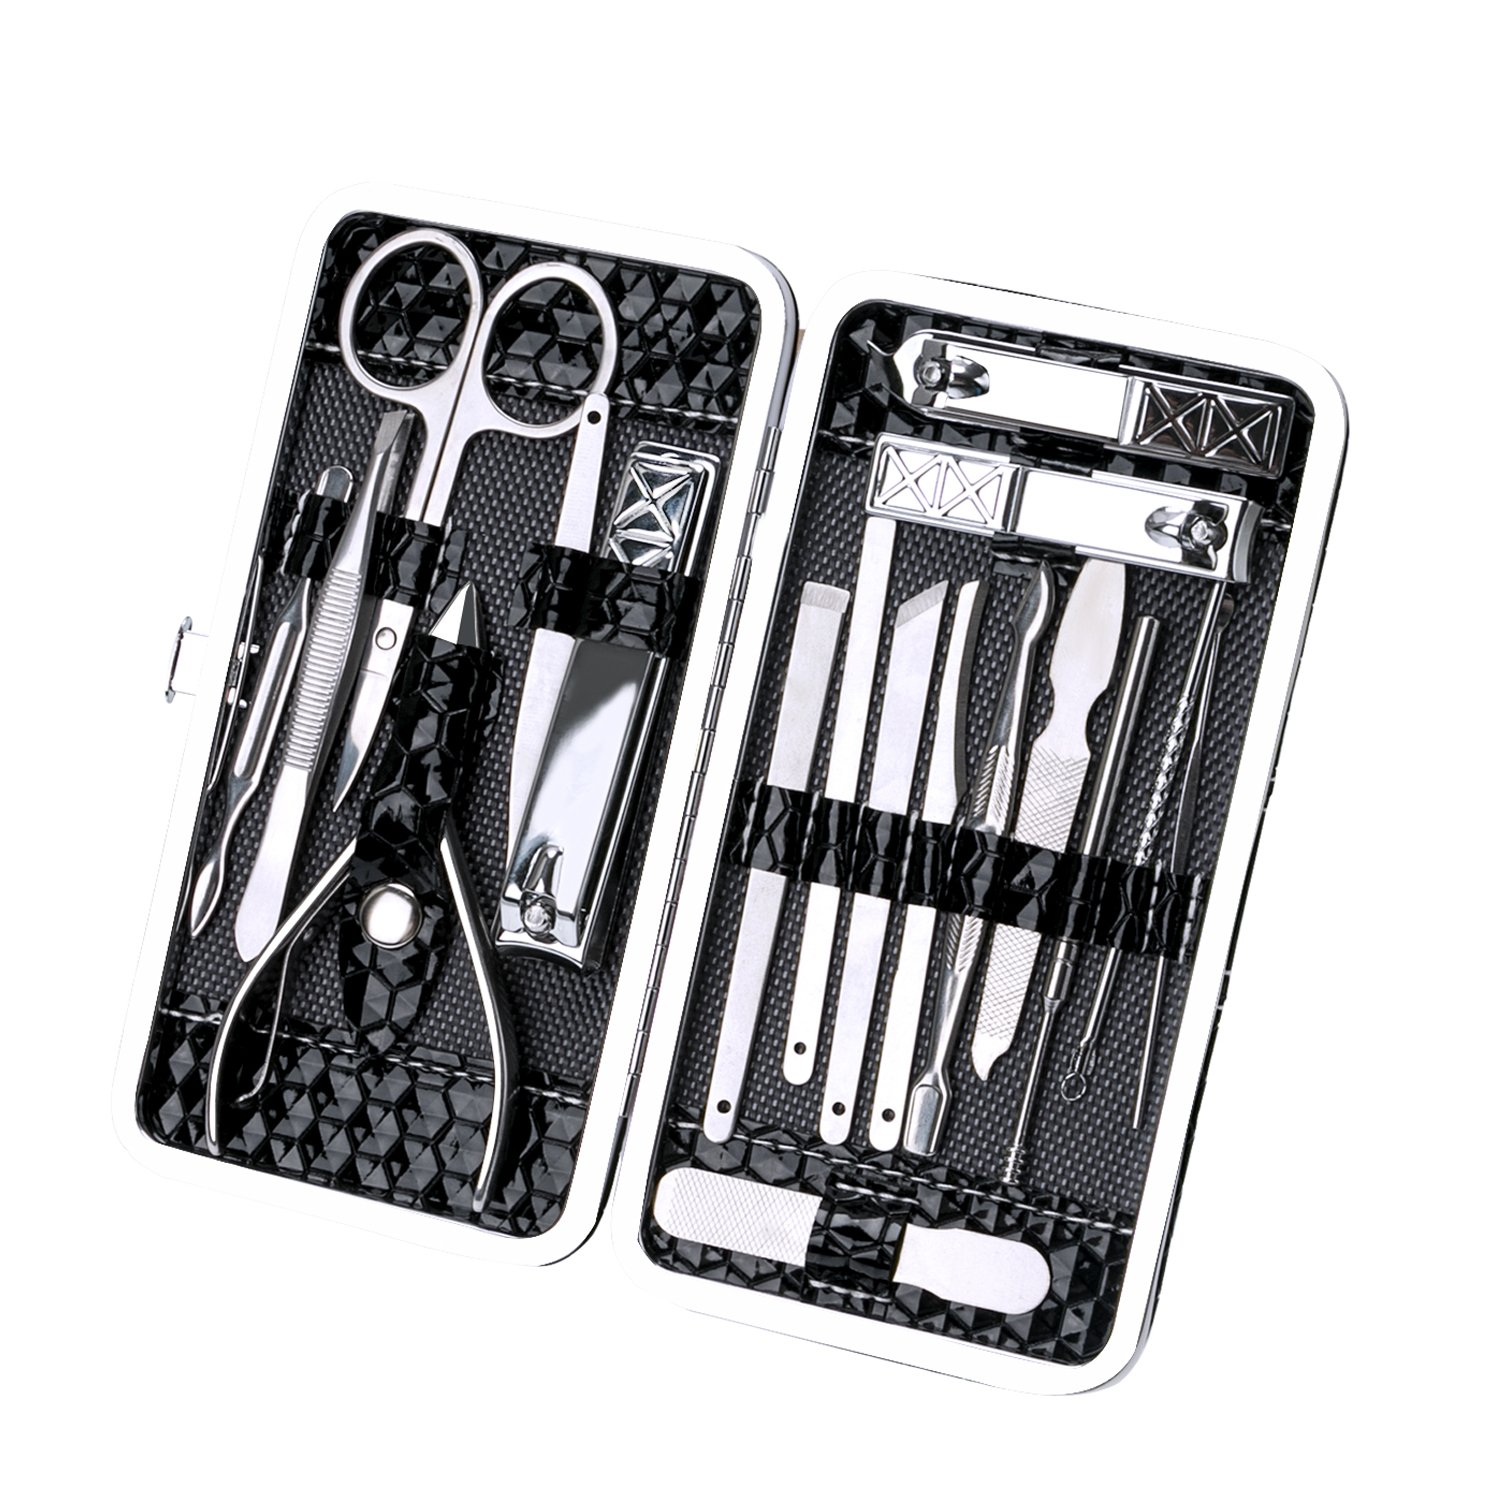 Manicure Pedicure Set Nail Clippers, ALLIMITY 18 Pieces Stainless Steel Manicure Kit, Pedicure Kit, Grooming Kit, Professional Hygiene Kit Nail Tools with Portable Travel Case Beauty Care Tools